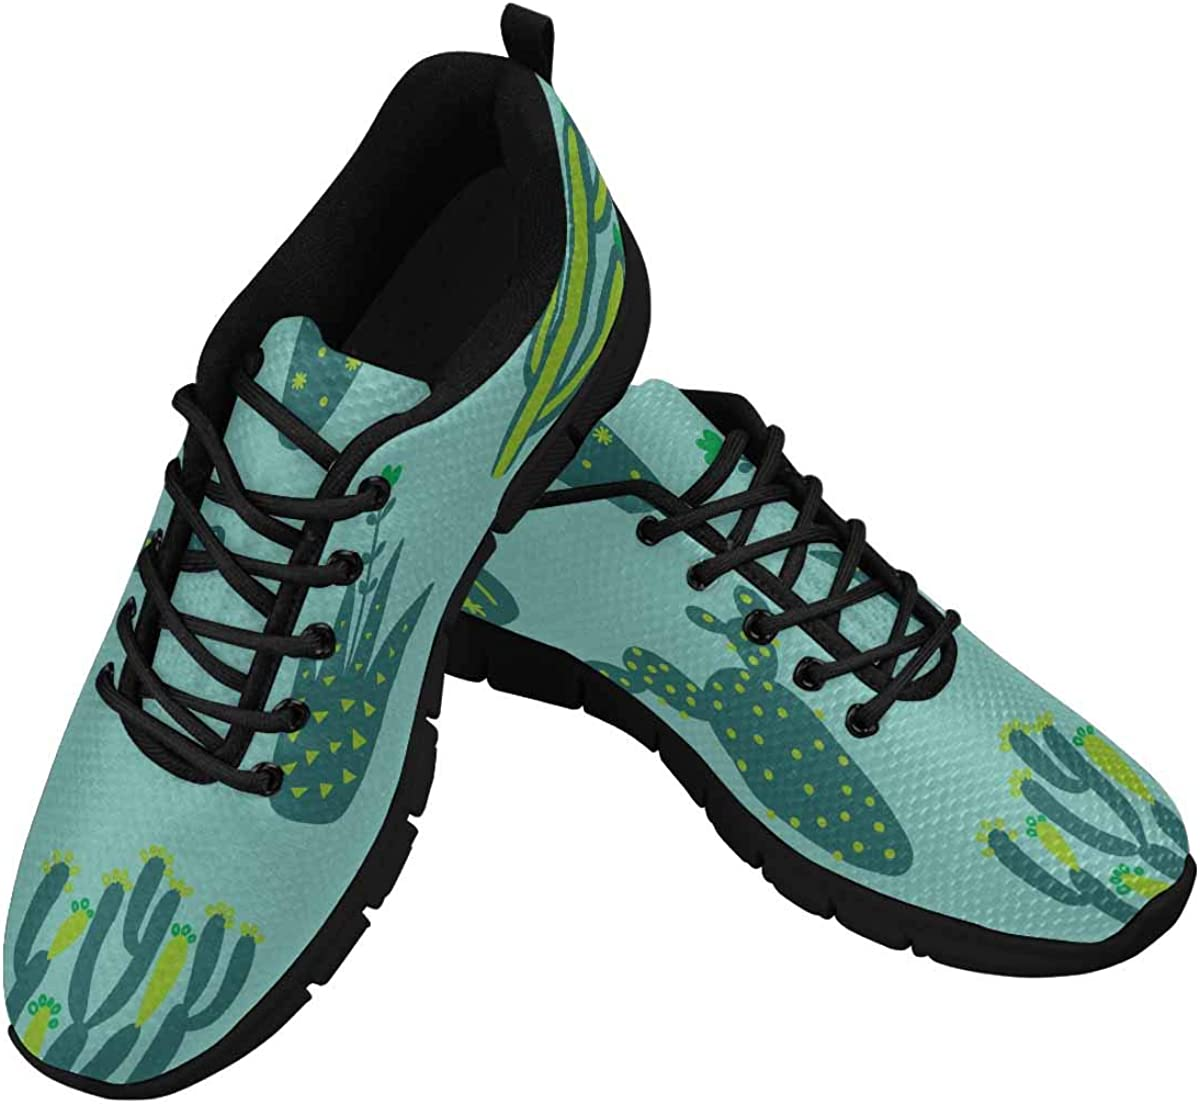 InterestPrint Cartoon Cactuses Pattern Women's Lace Up Running Comfort Sports Sneakers